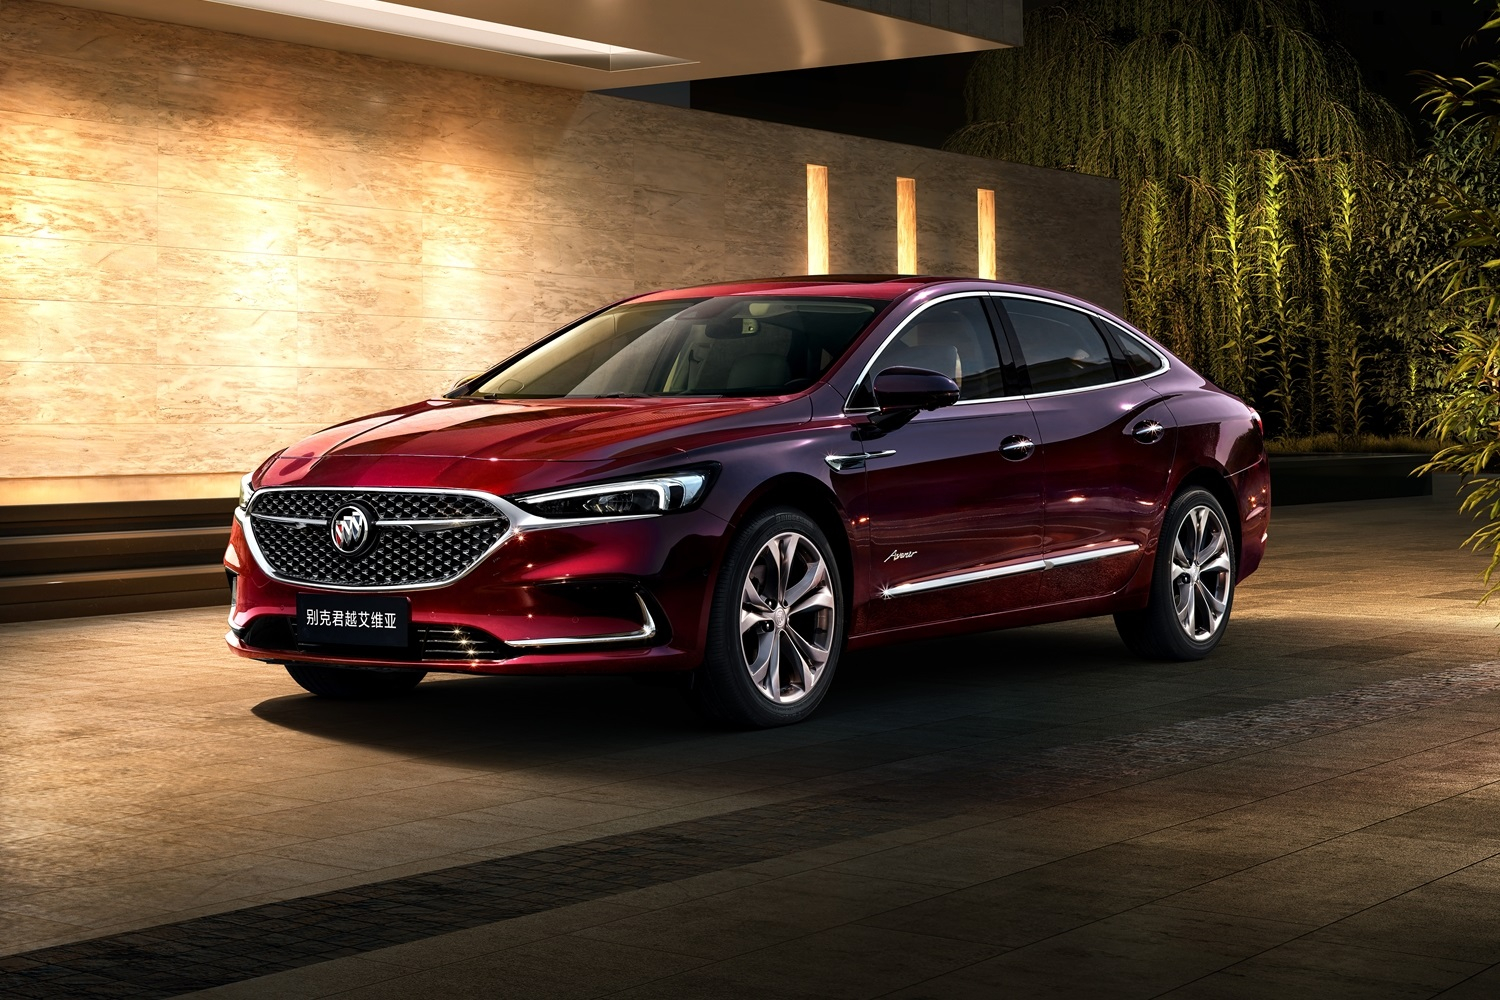 2021 Buick Lacrosse Gets More Refined Than Ever | Gm Authority 2021 Buick Lucerne Mpg, Seat Covers, Specs